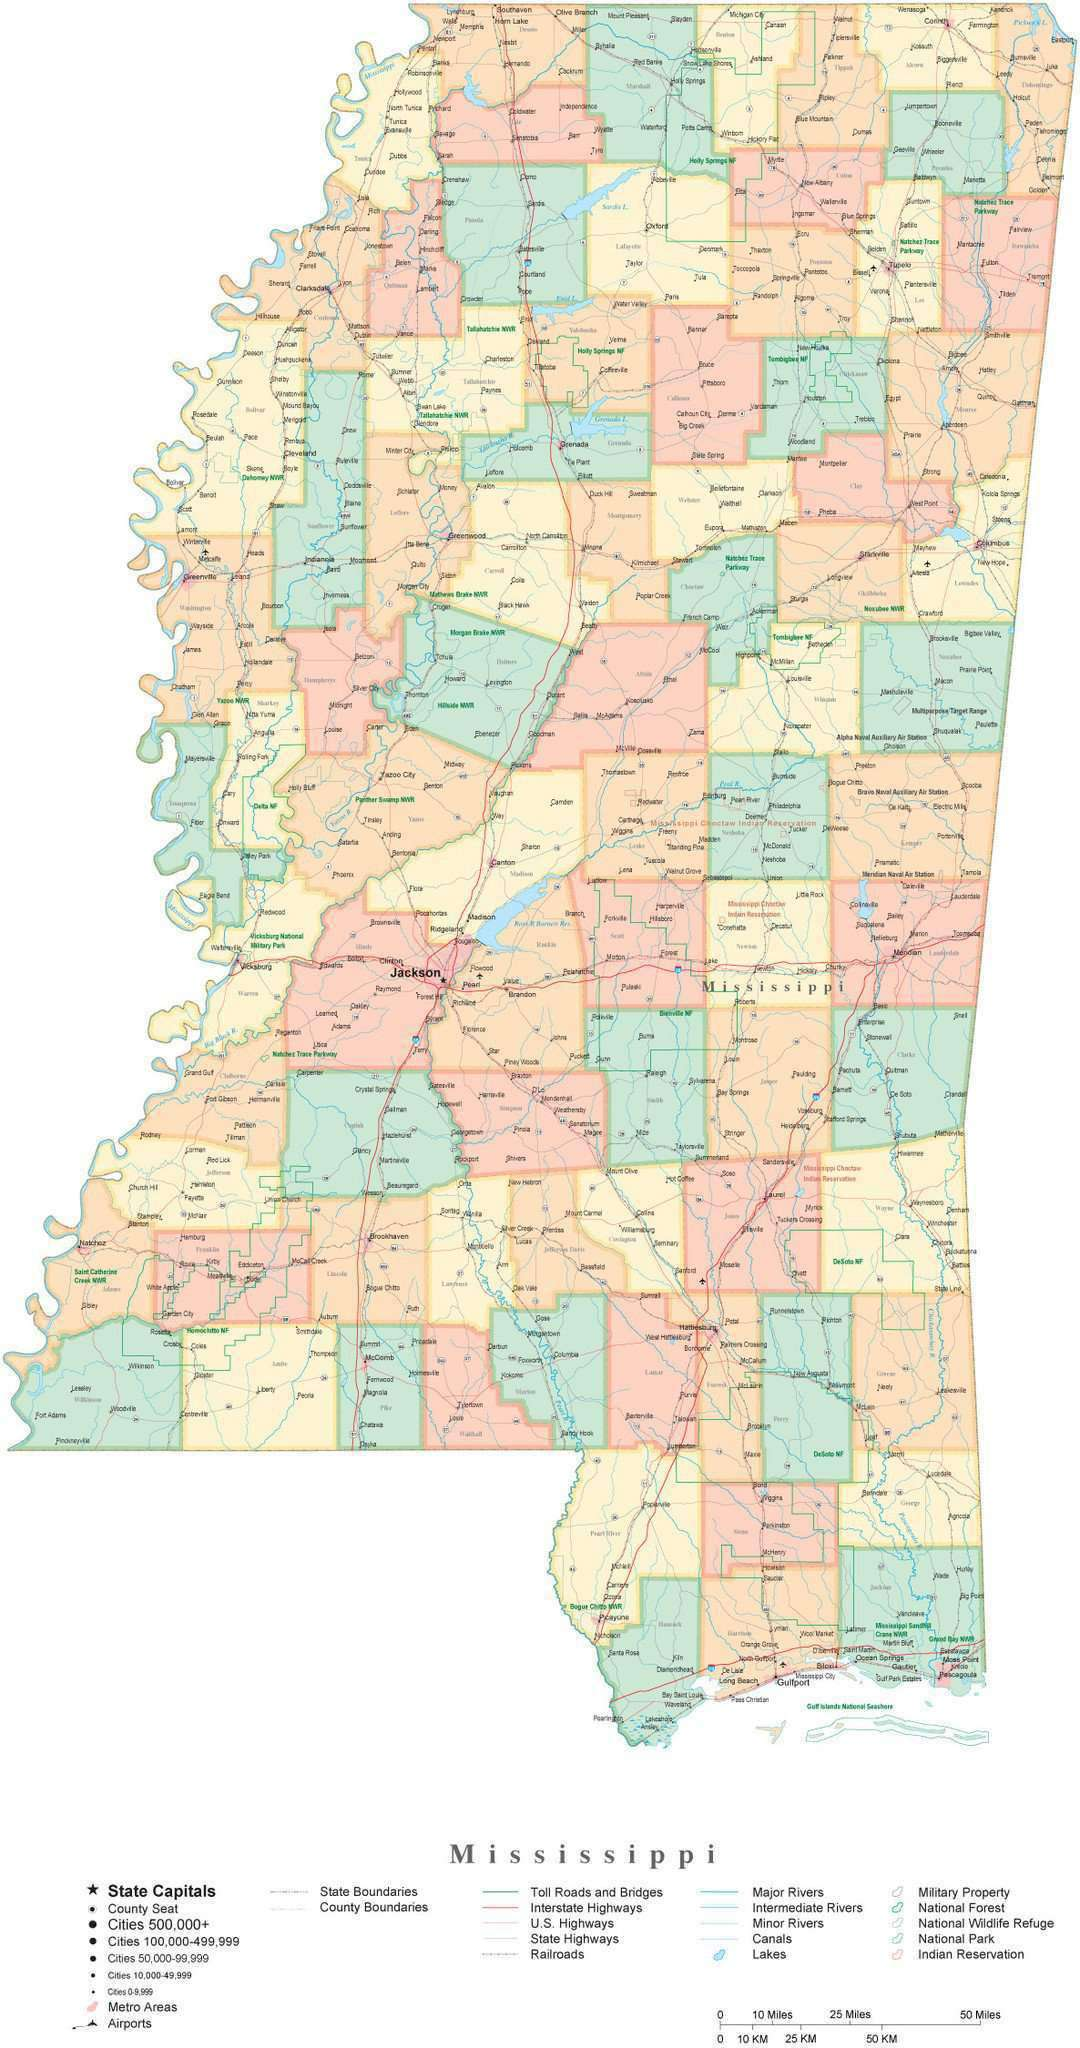 State Map Of Mississippi In Adobe Illustrator Vector Format